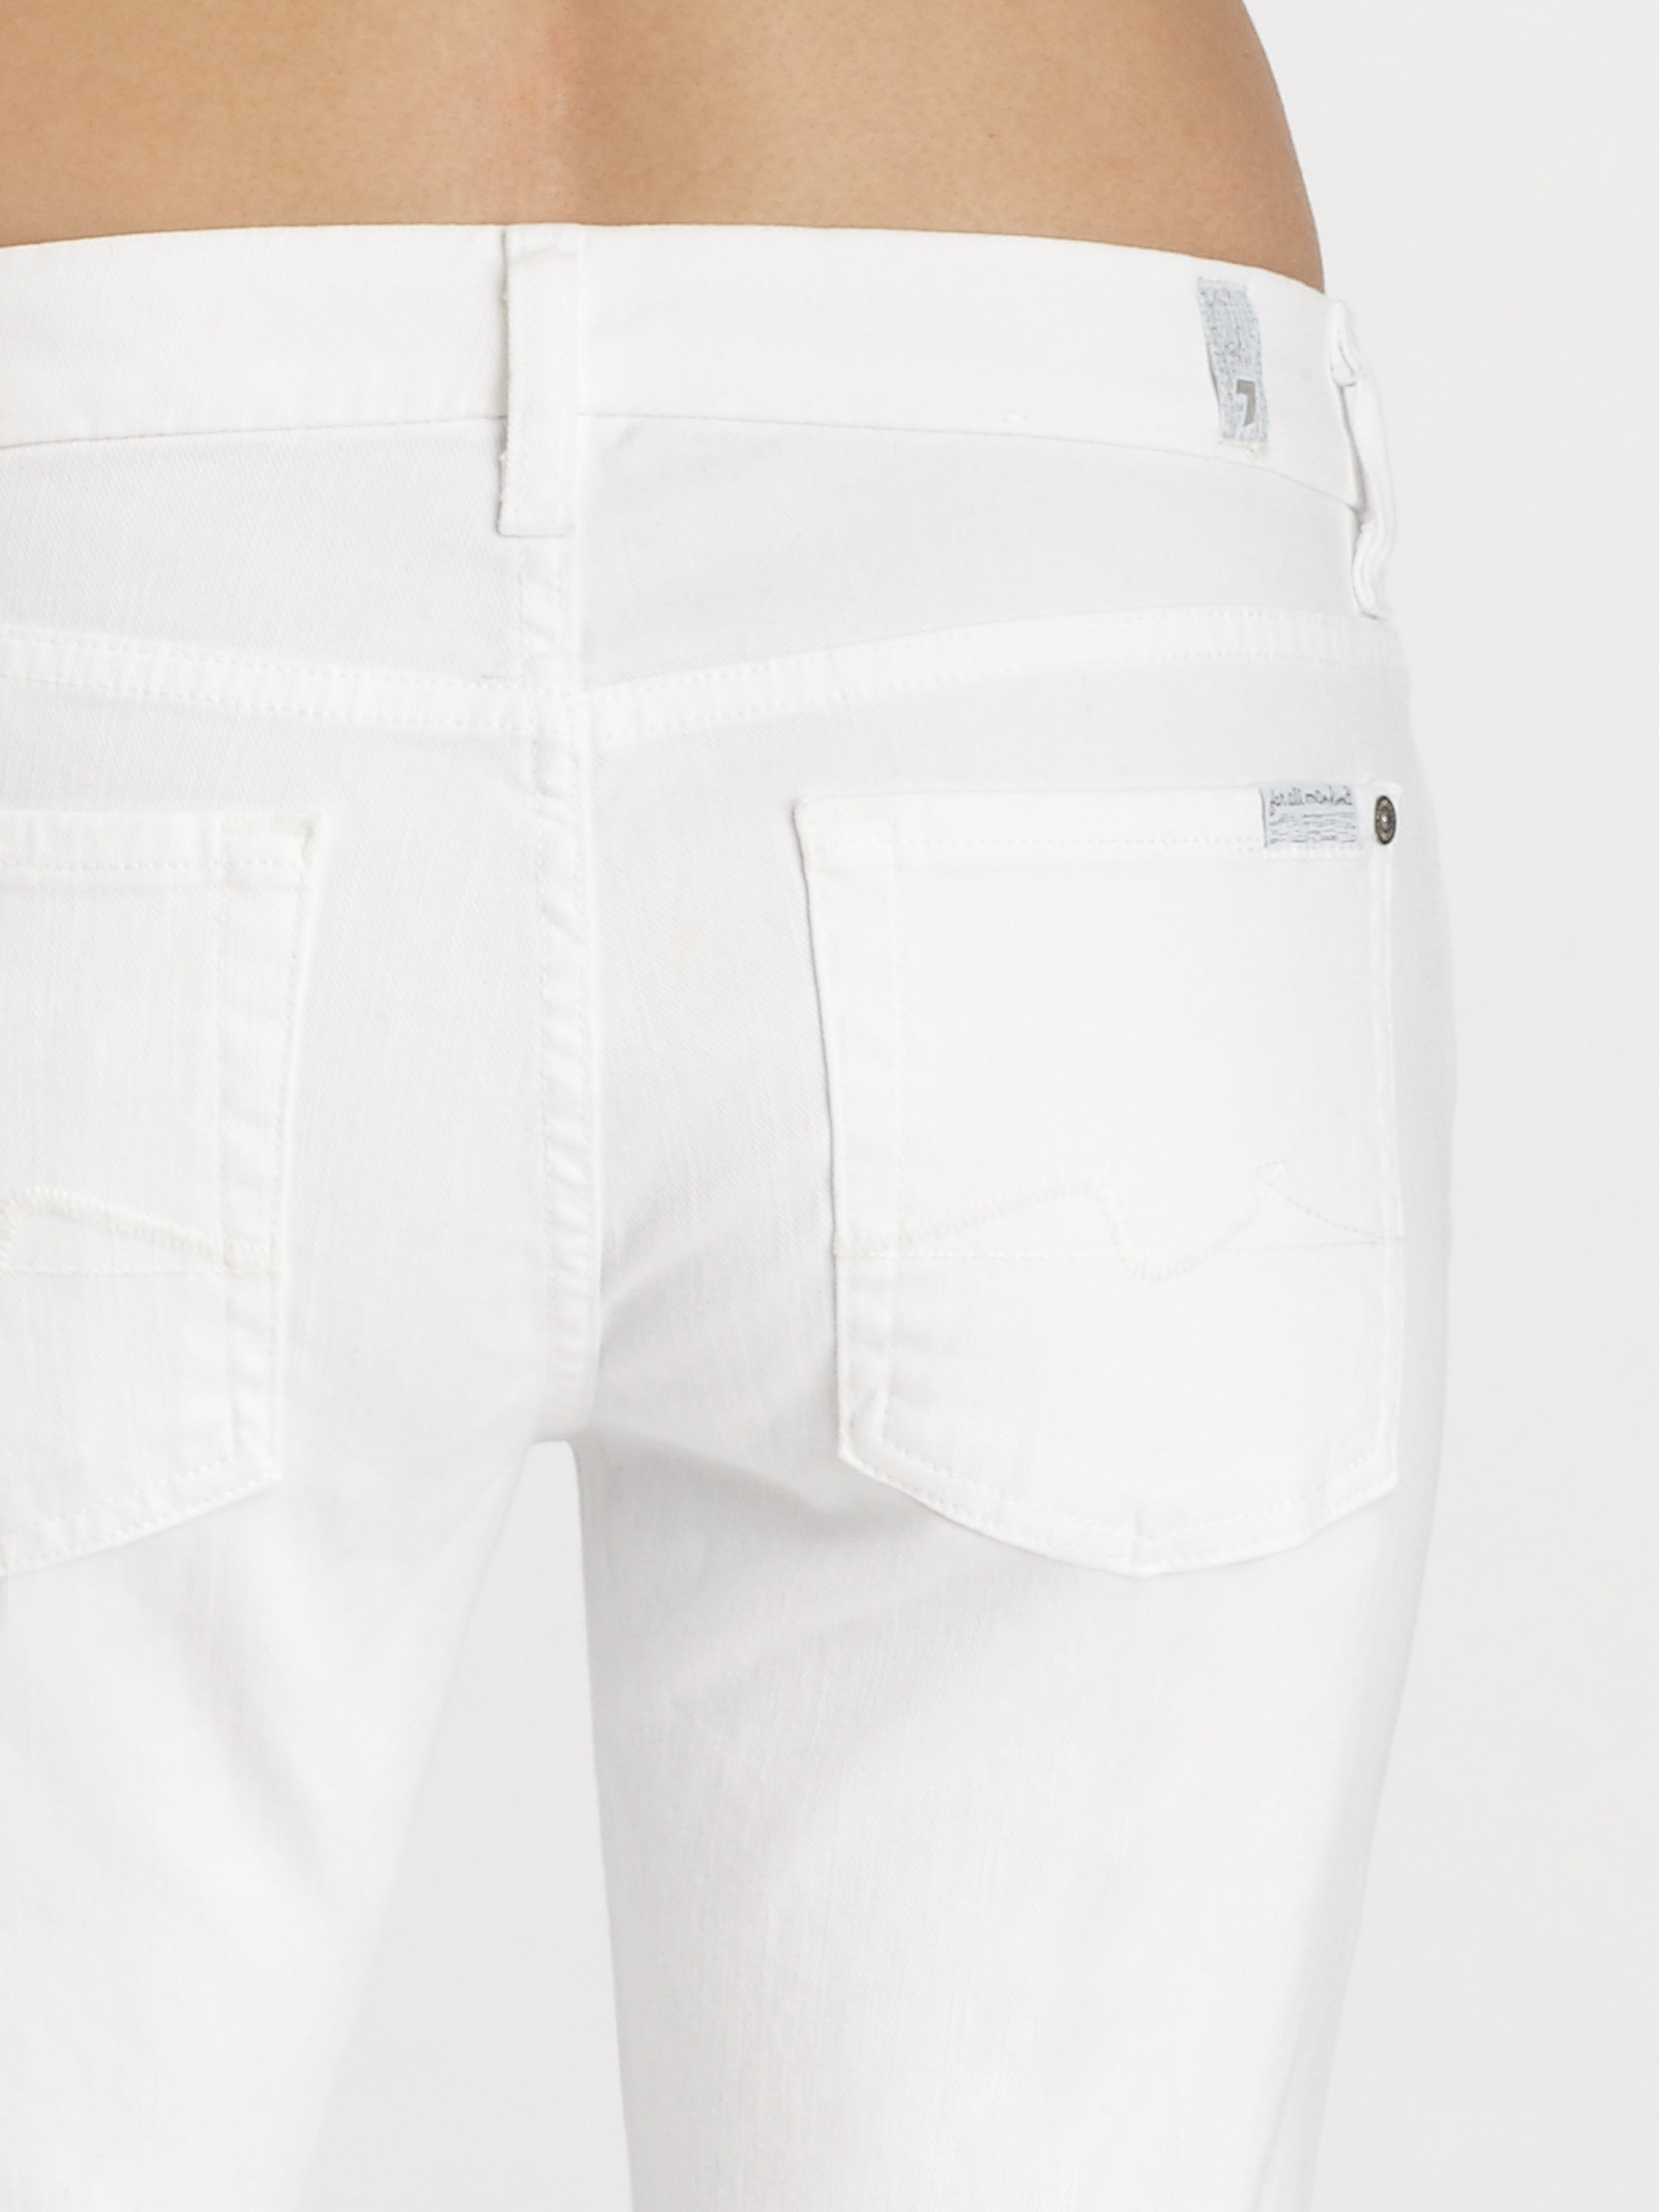 White 7 Jeans | Jeans To